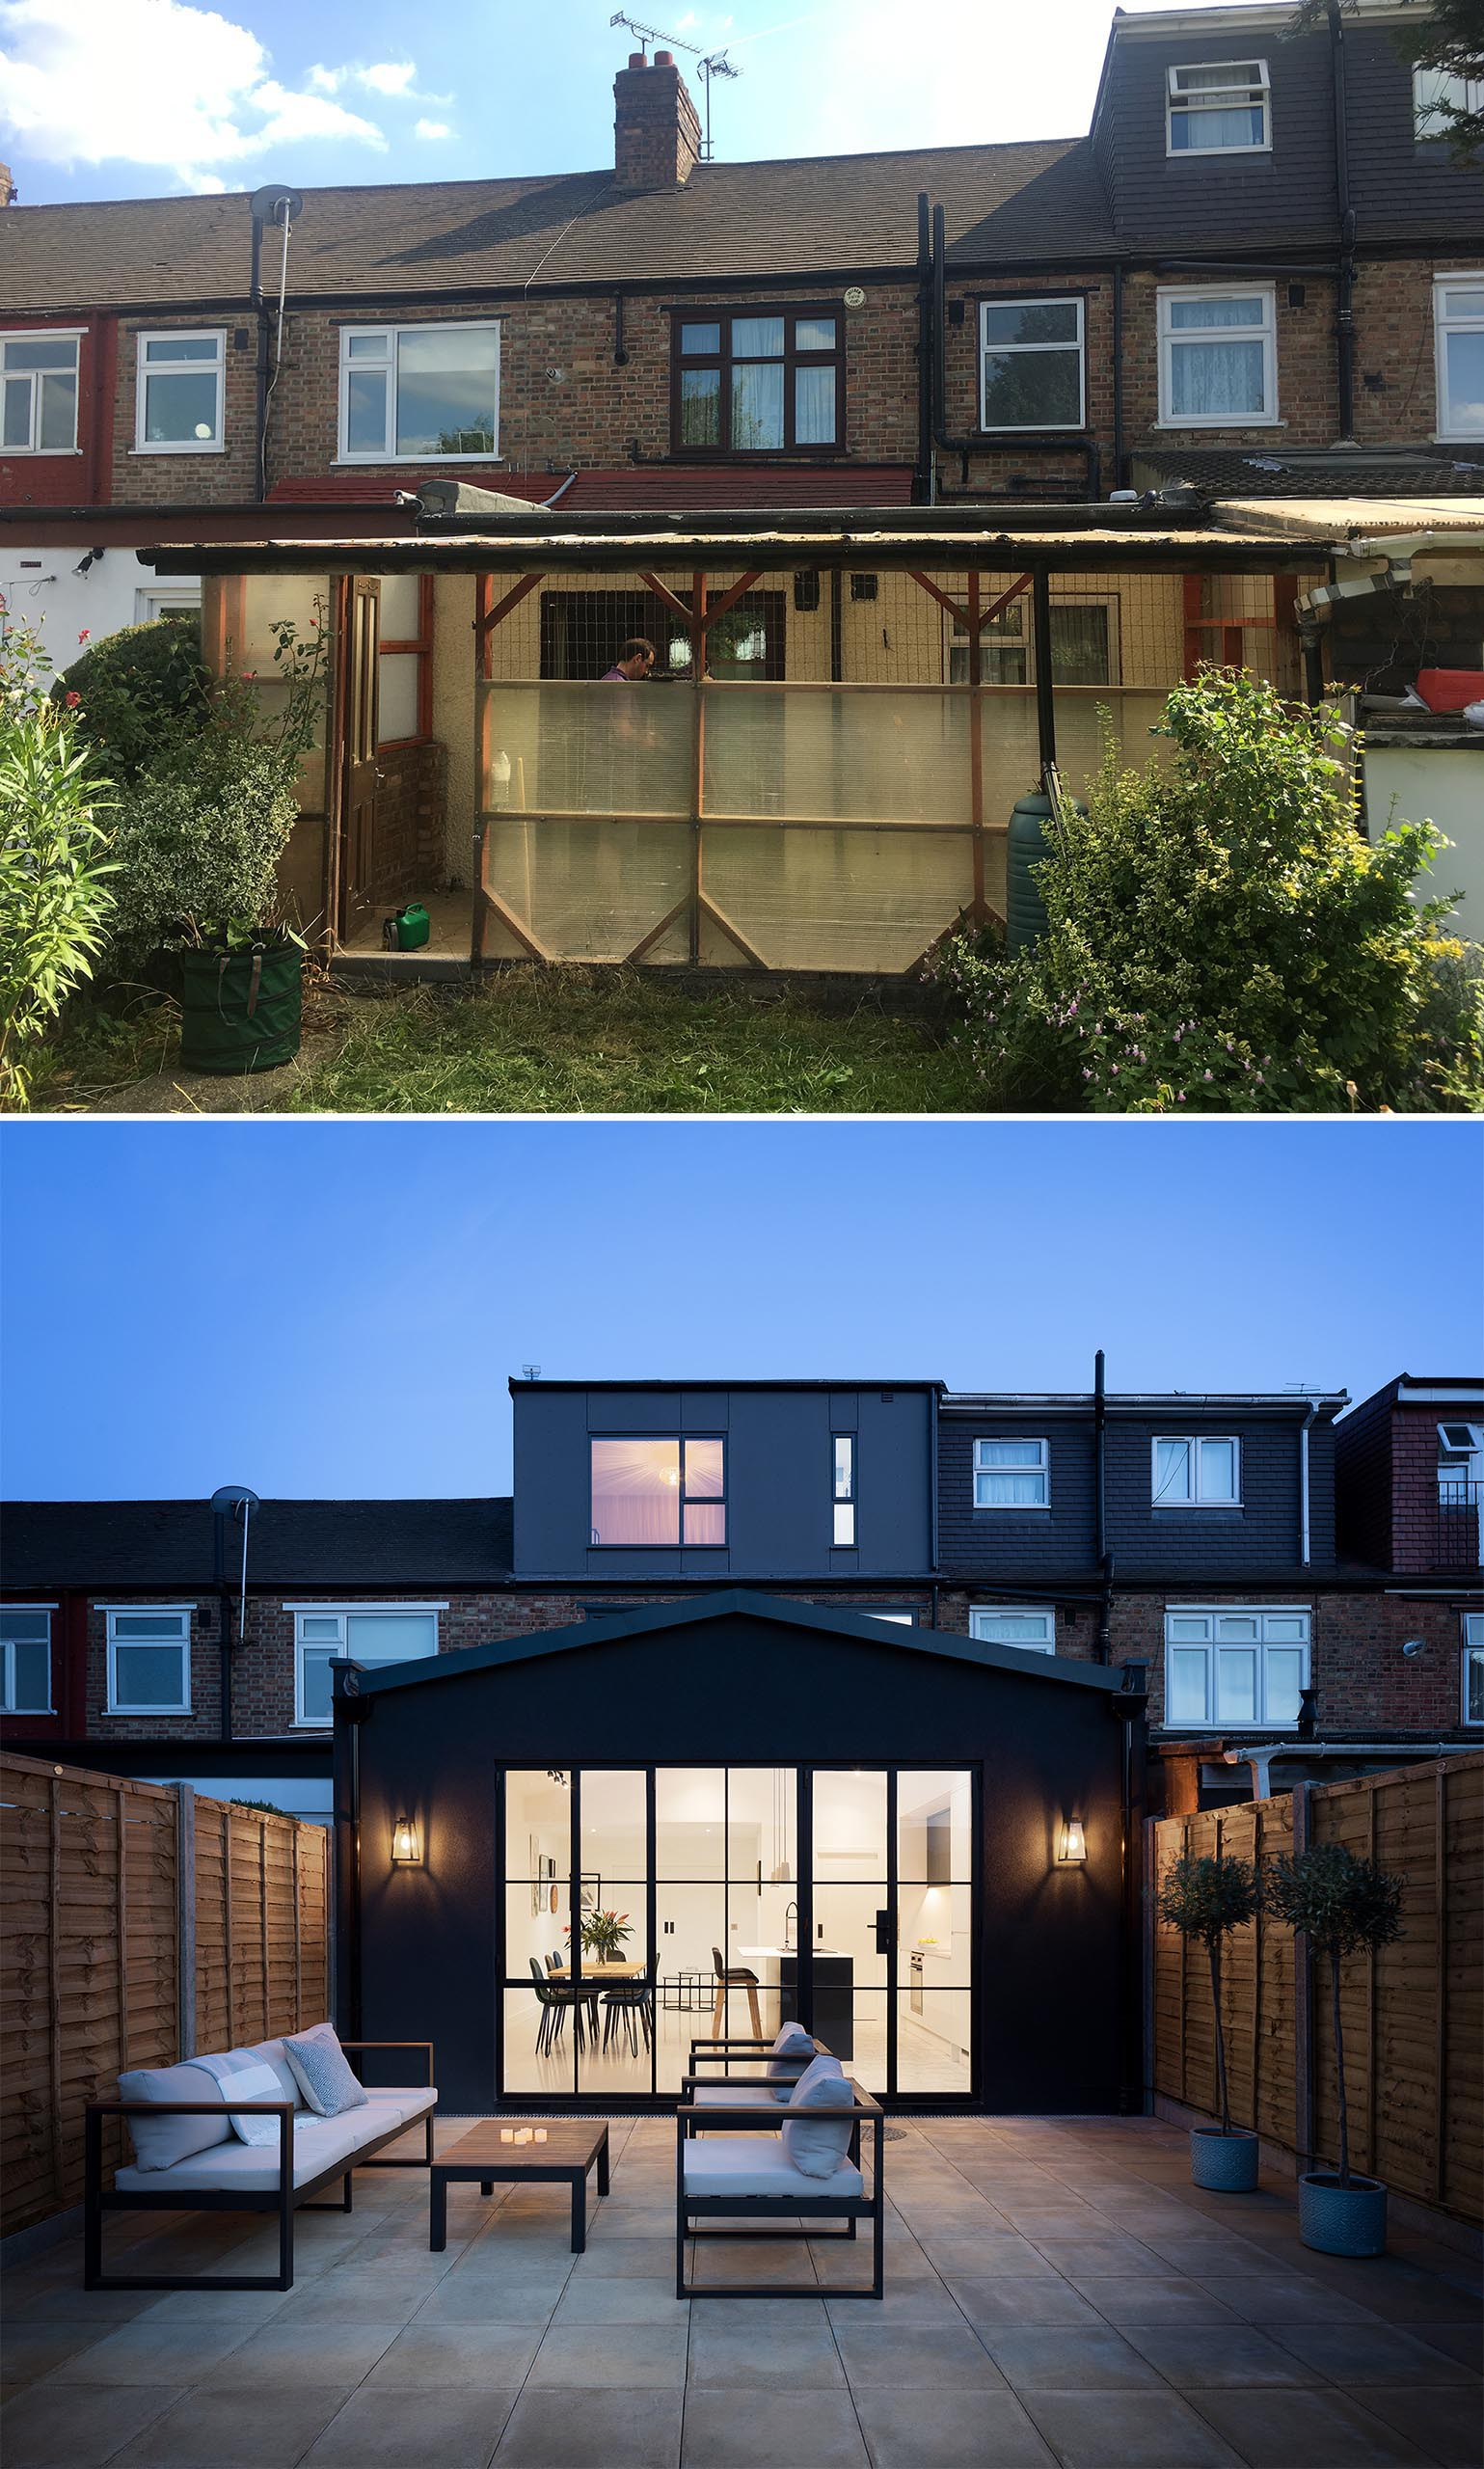 Before & After - A modern house extension that includes a new kitchen and dining room.